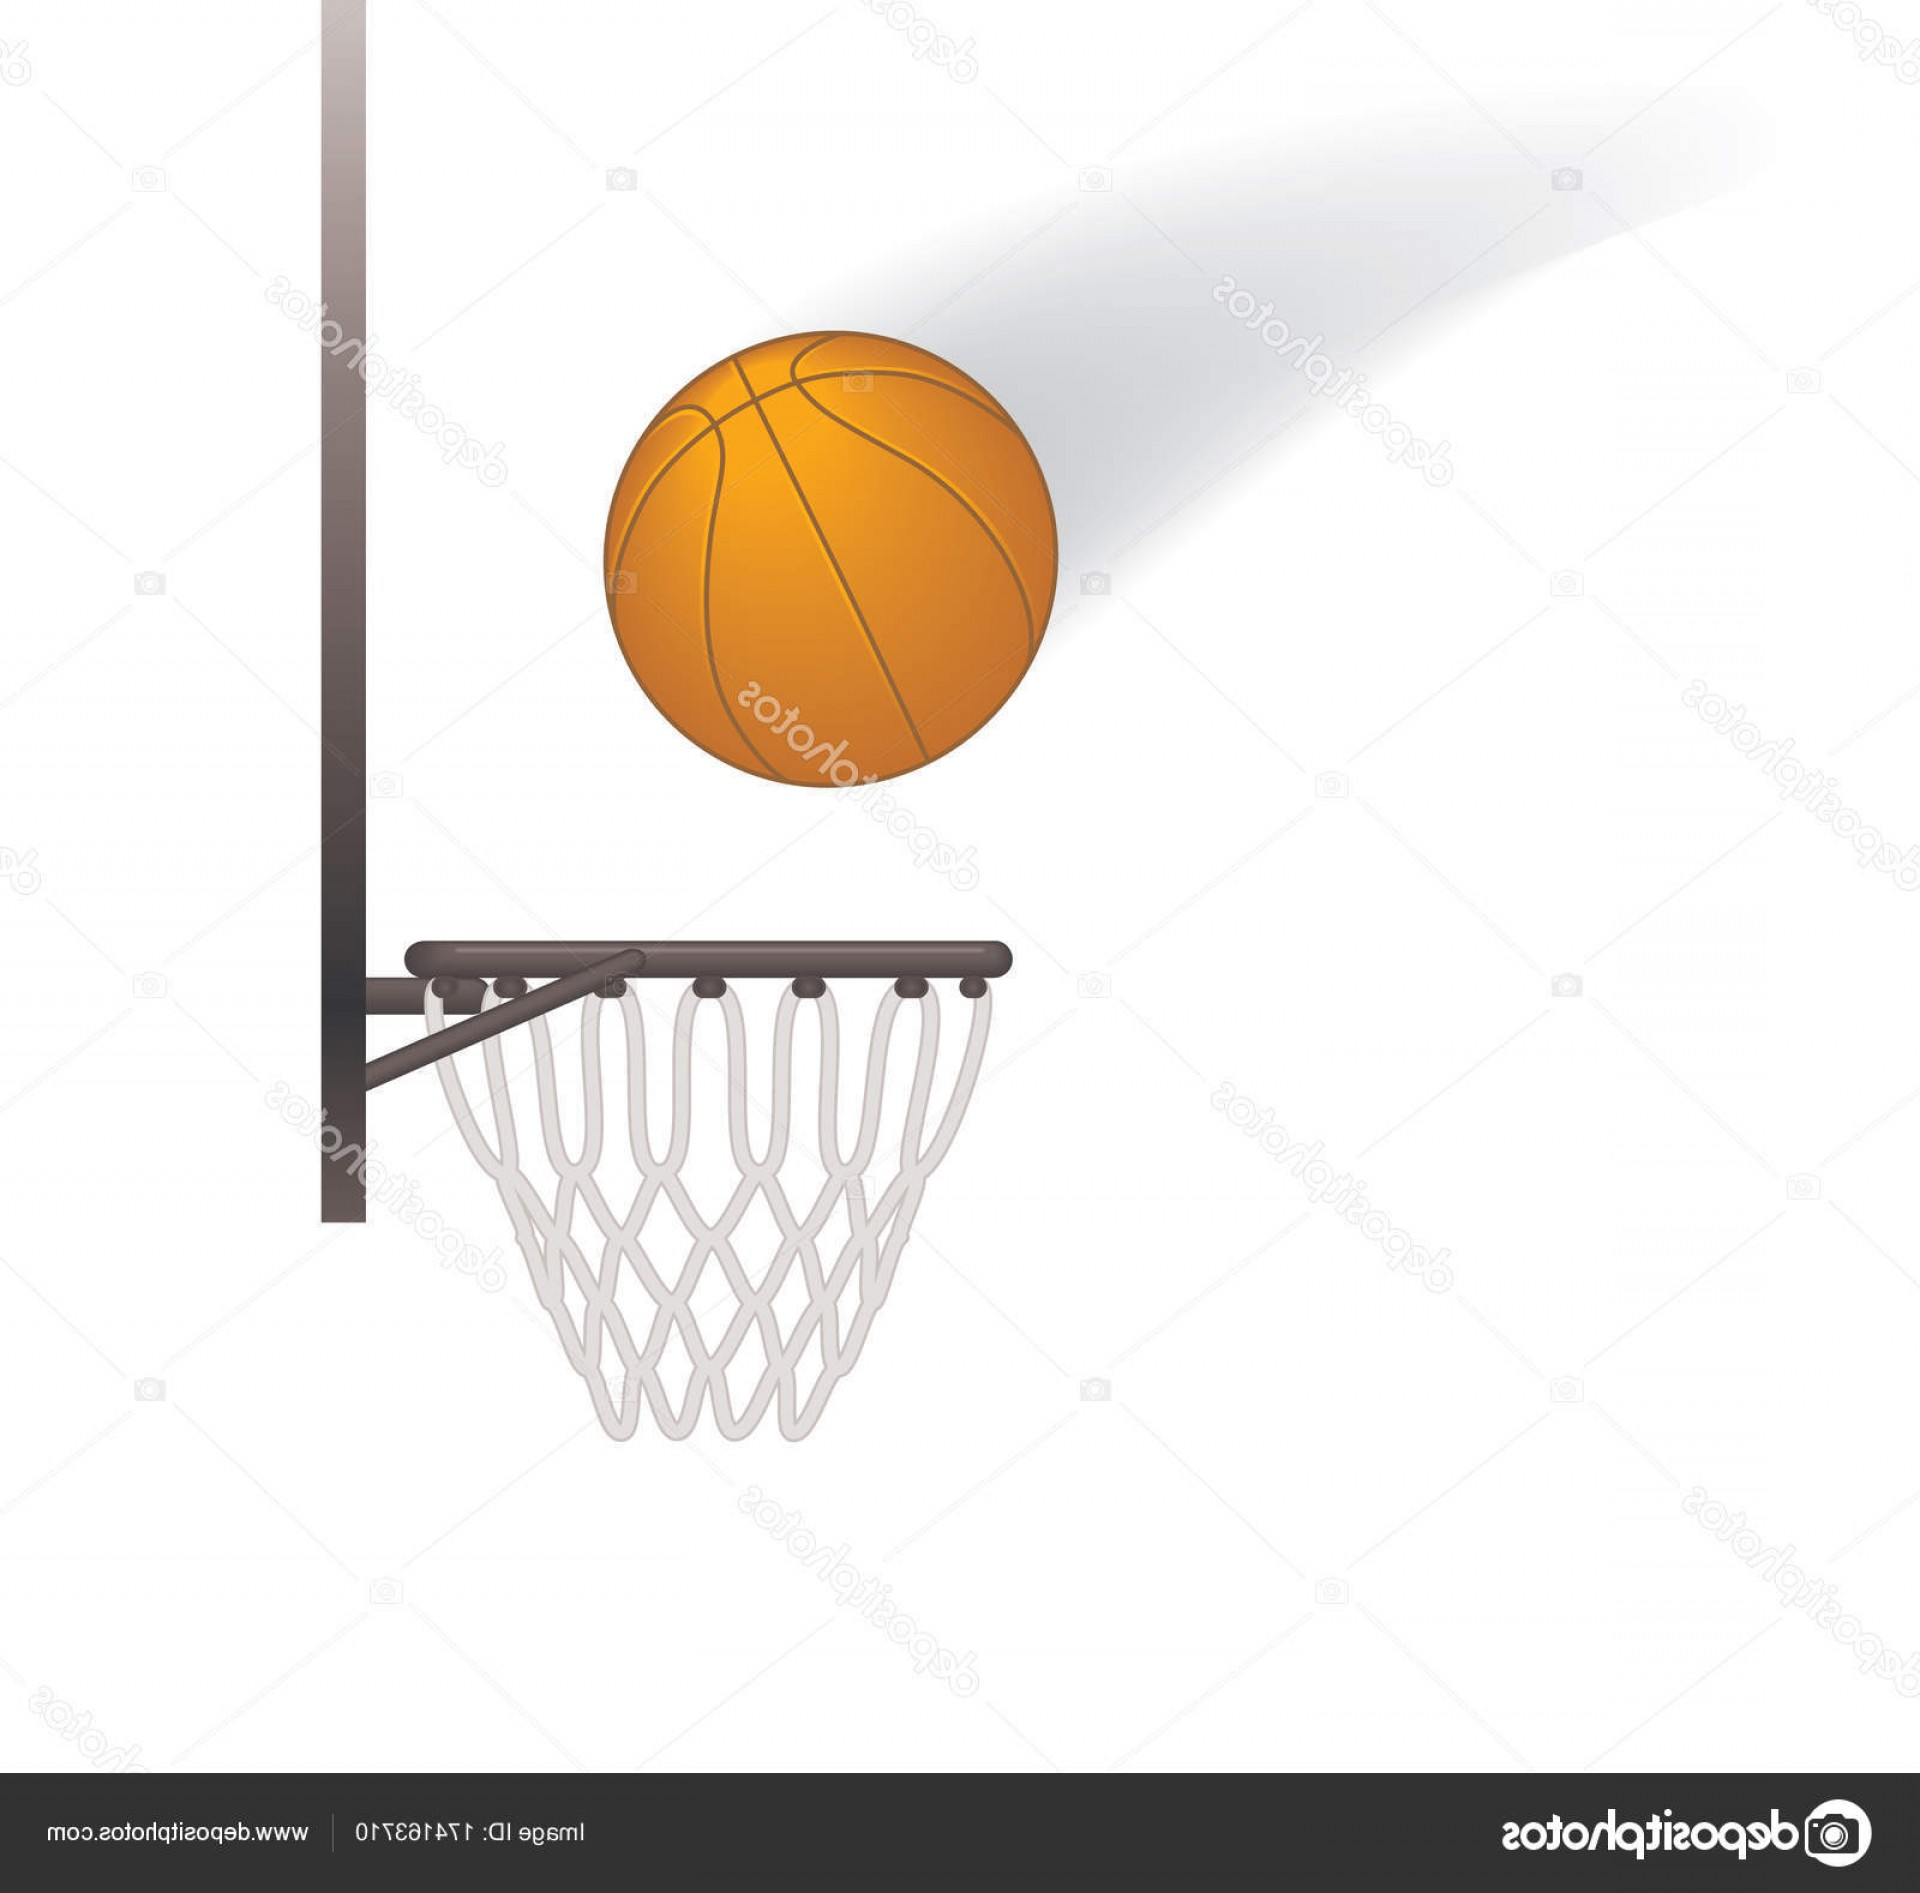 Motion Basketball Vector: Stock Illustration Basketball In Motion Into Basketball